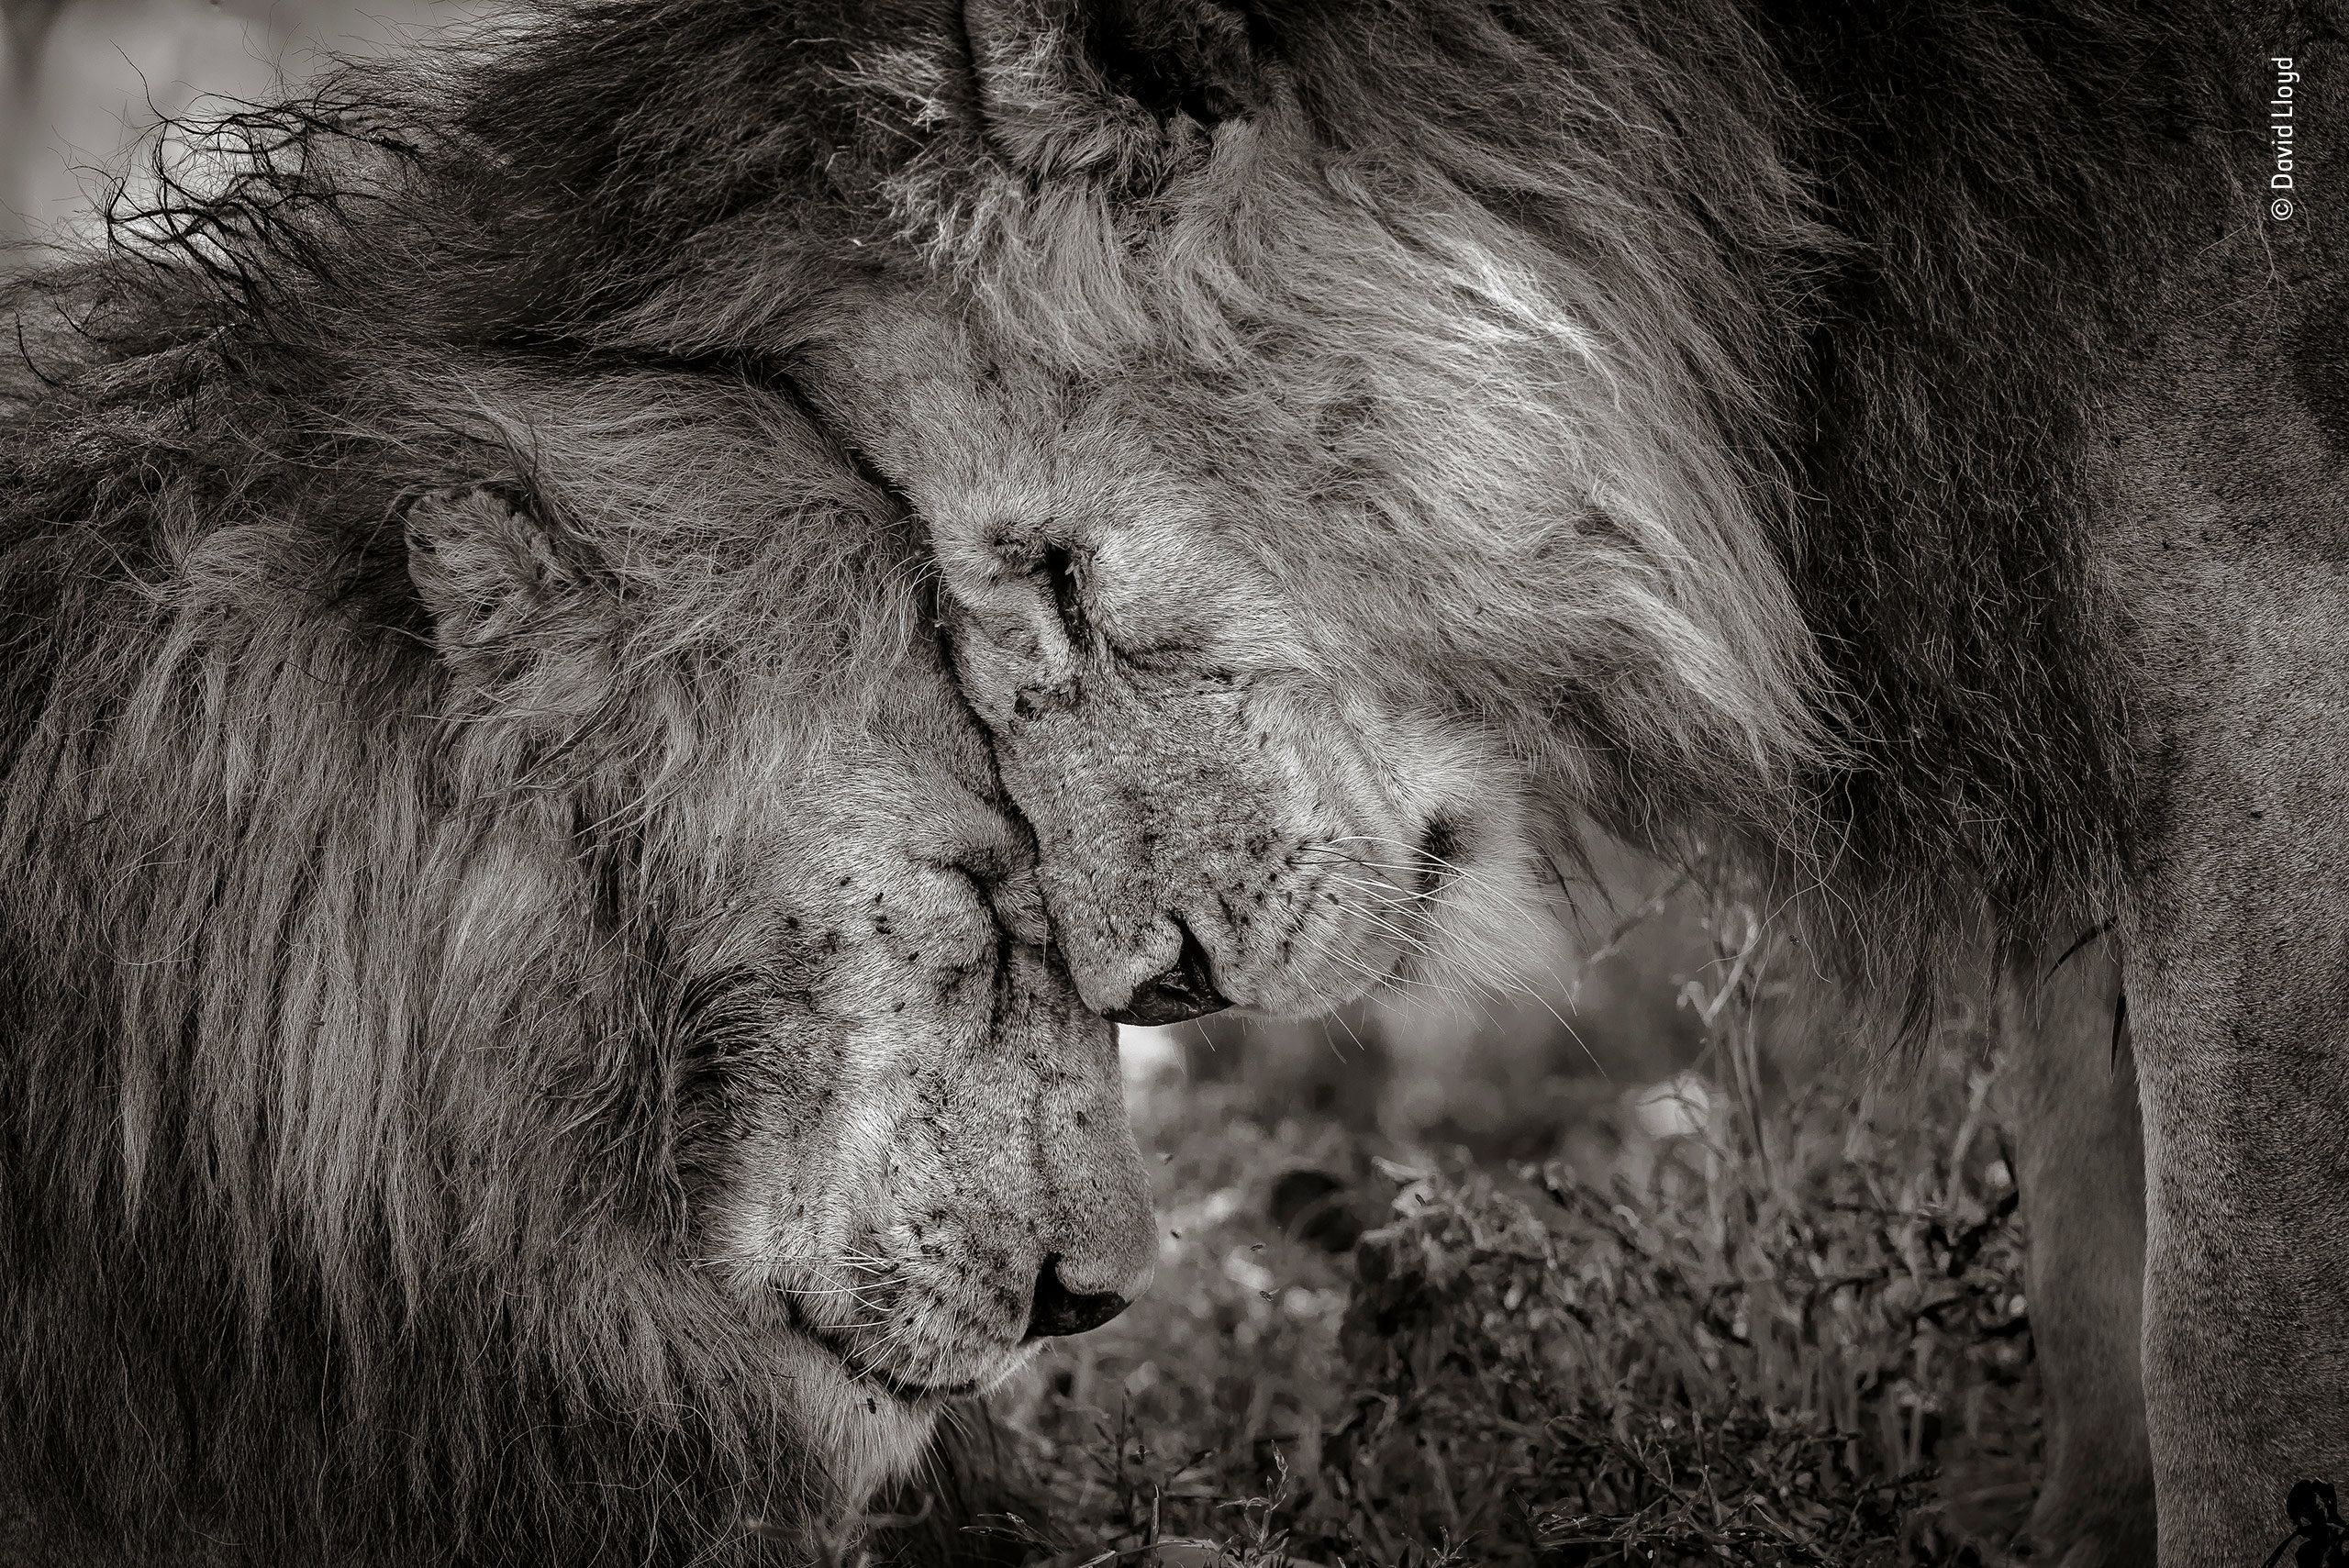 Wildlife Photographer Of The Year's Winning Photo Is A Valentine's Day Treat